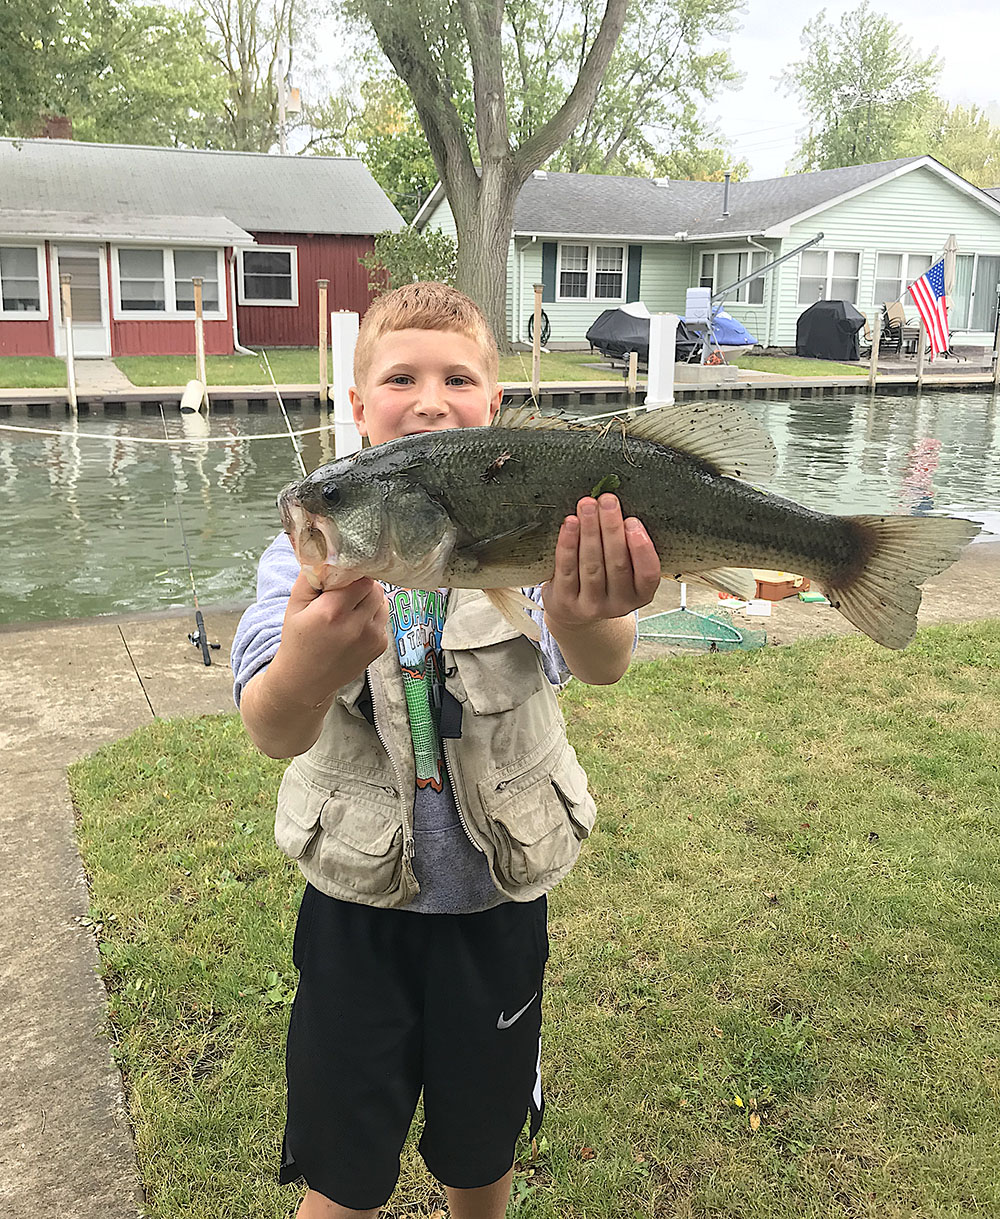 Yellow perch bite has Lake Erie anglers smiling right now